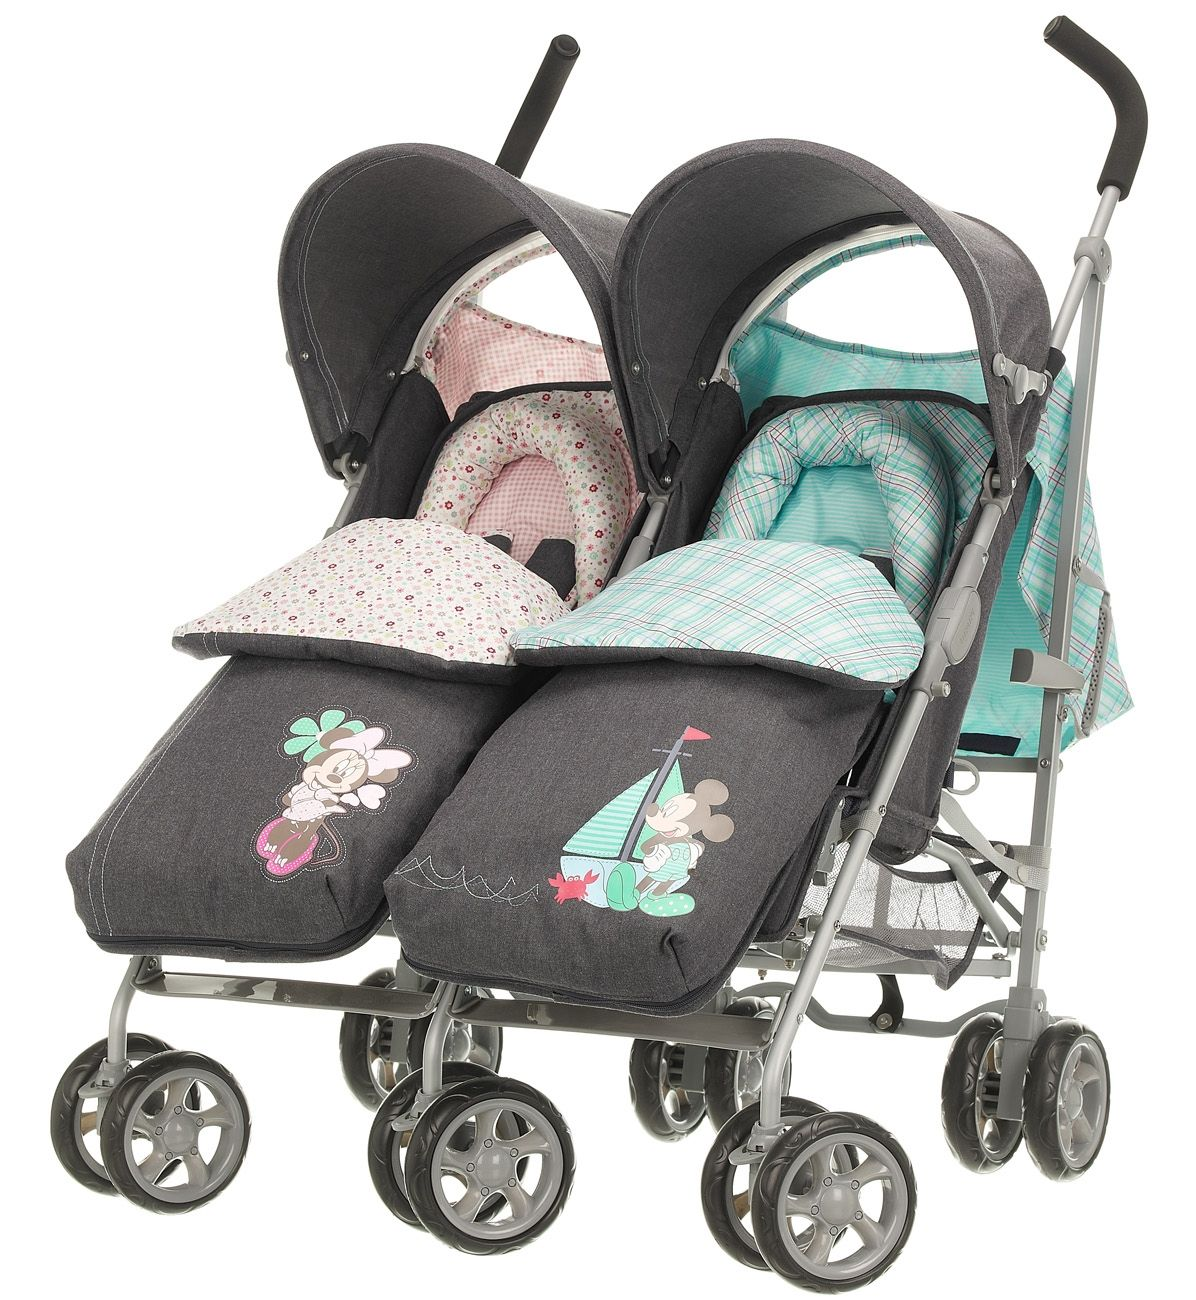 Mickey and Minnie! Twin strollers, Best twin strollers